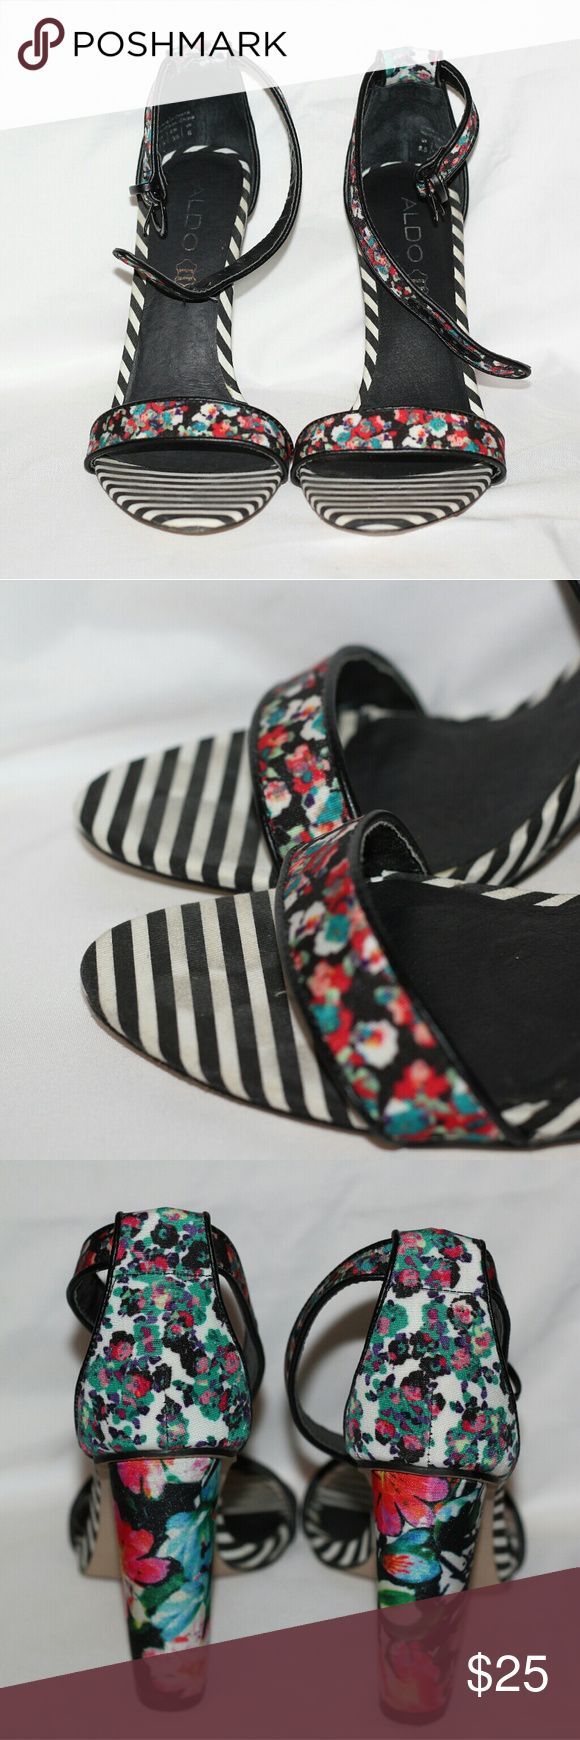 (ON HOLD) Aldo Floral & Stripe Heel Sandals These were worn once. I am in love with these. Very comfortable block heel. 4.5 inch heel. Price is firm. Aldo Shoes Heels